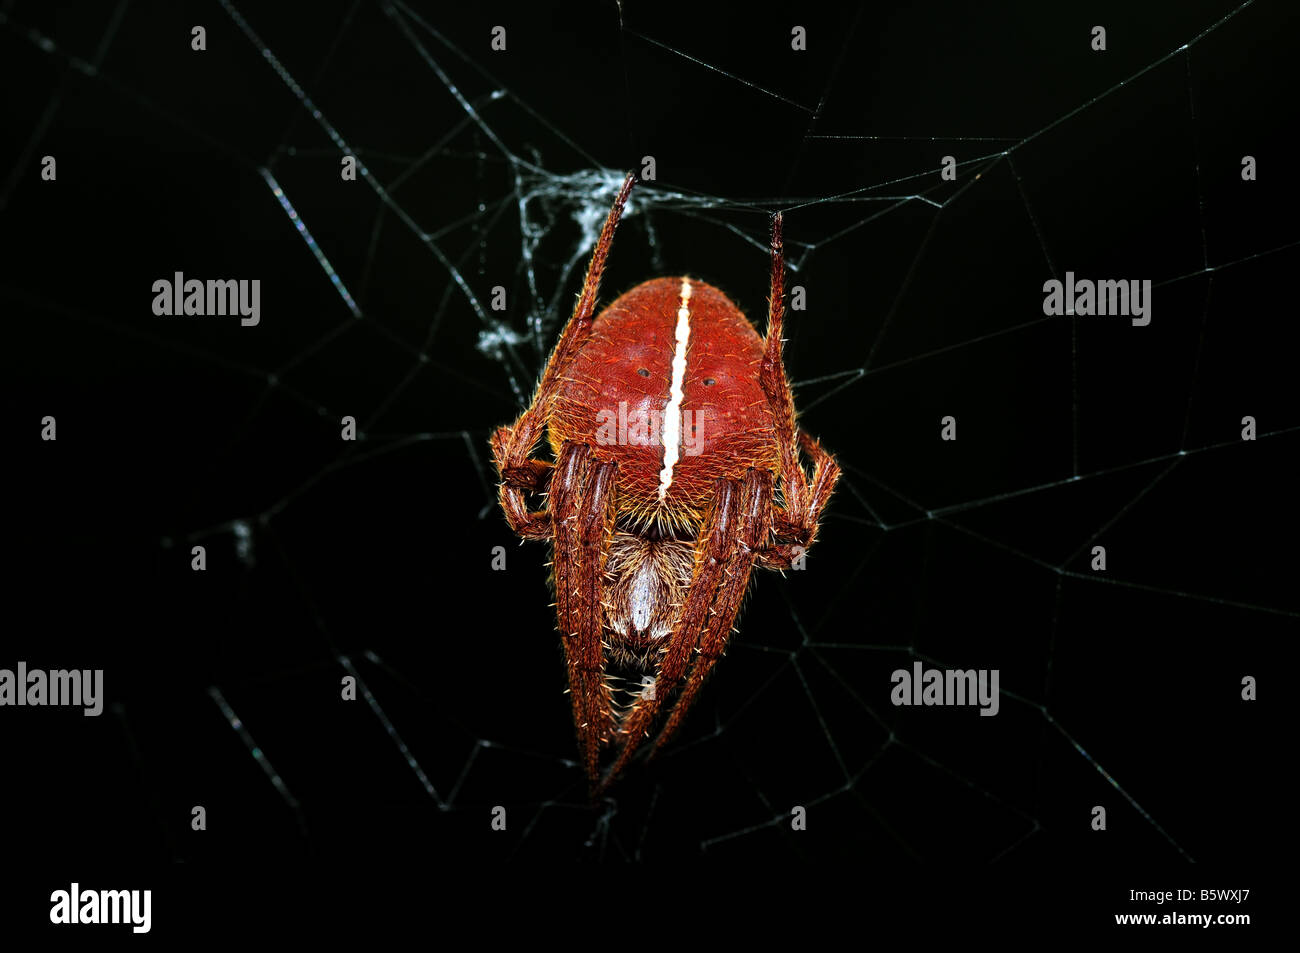 Red Orb Weaver spider. - Stock Image